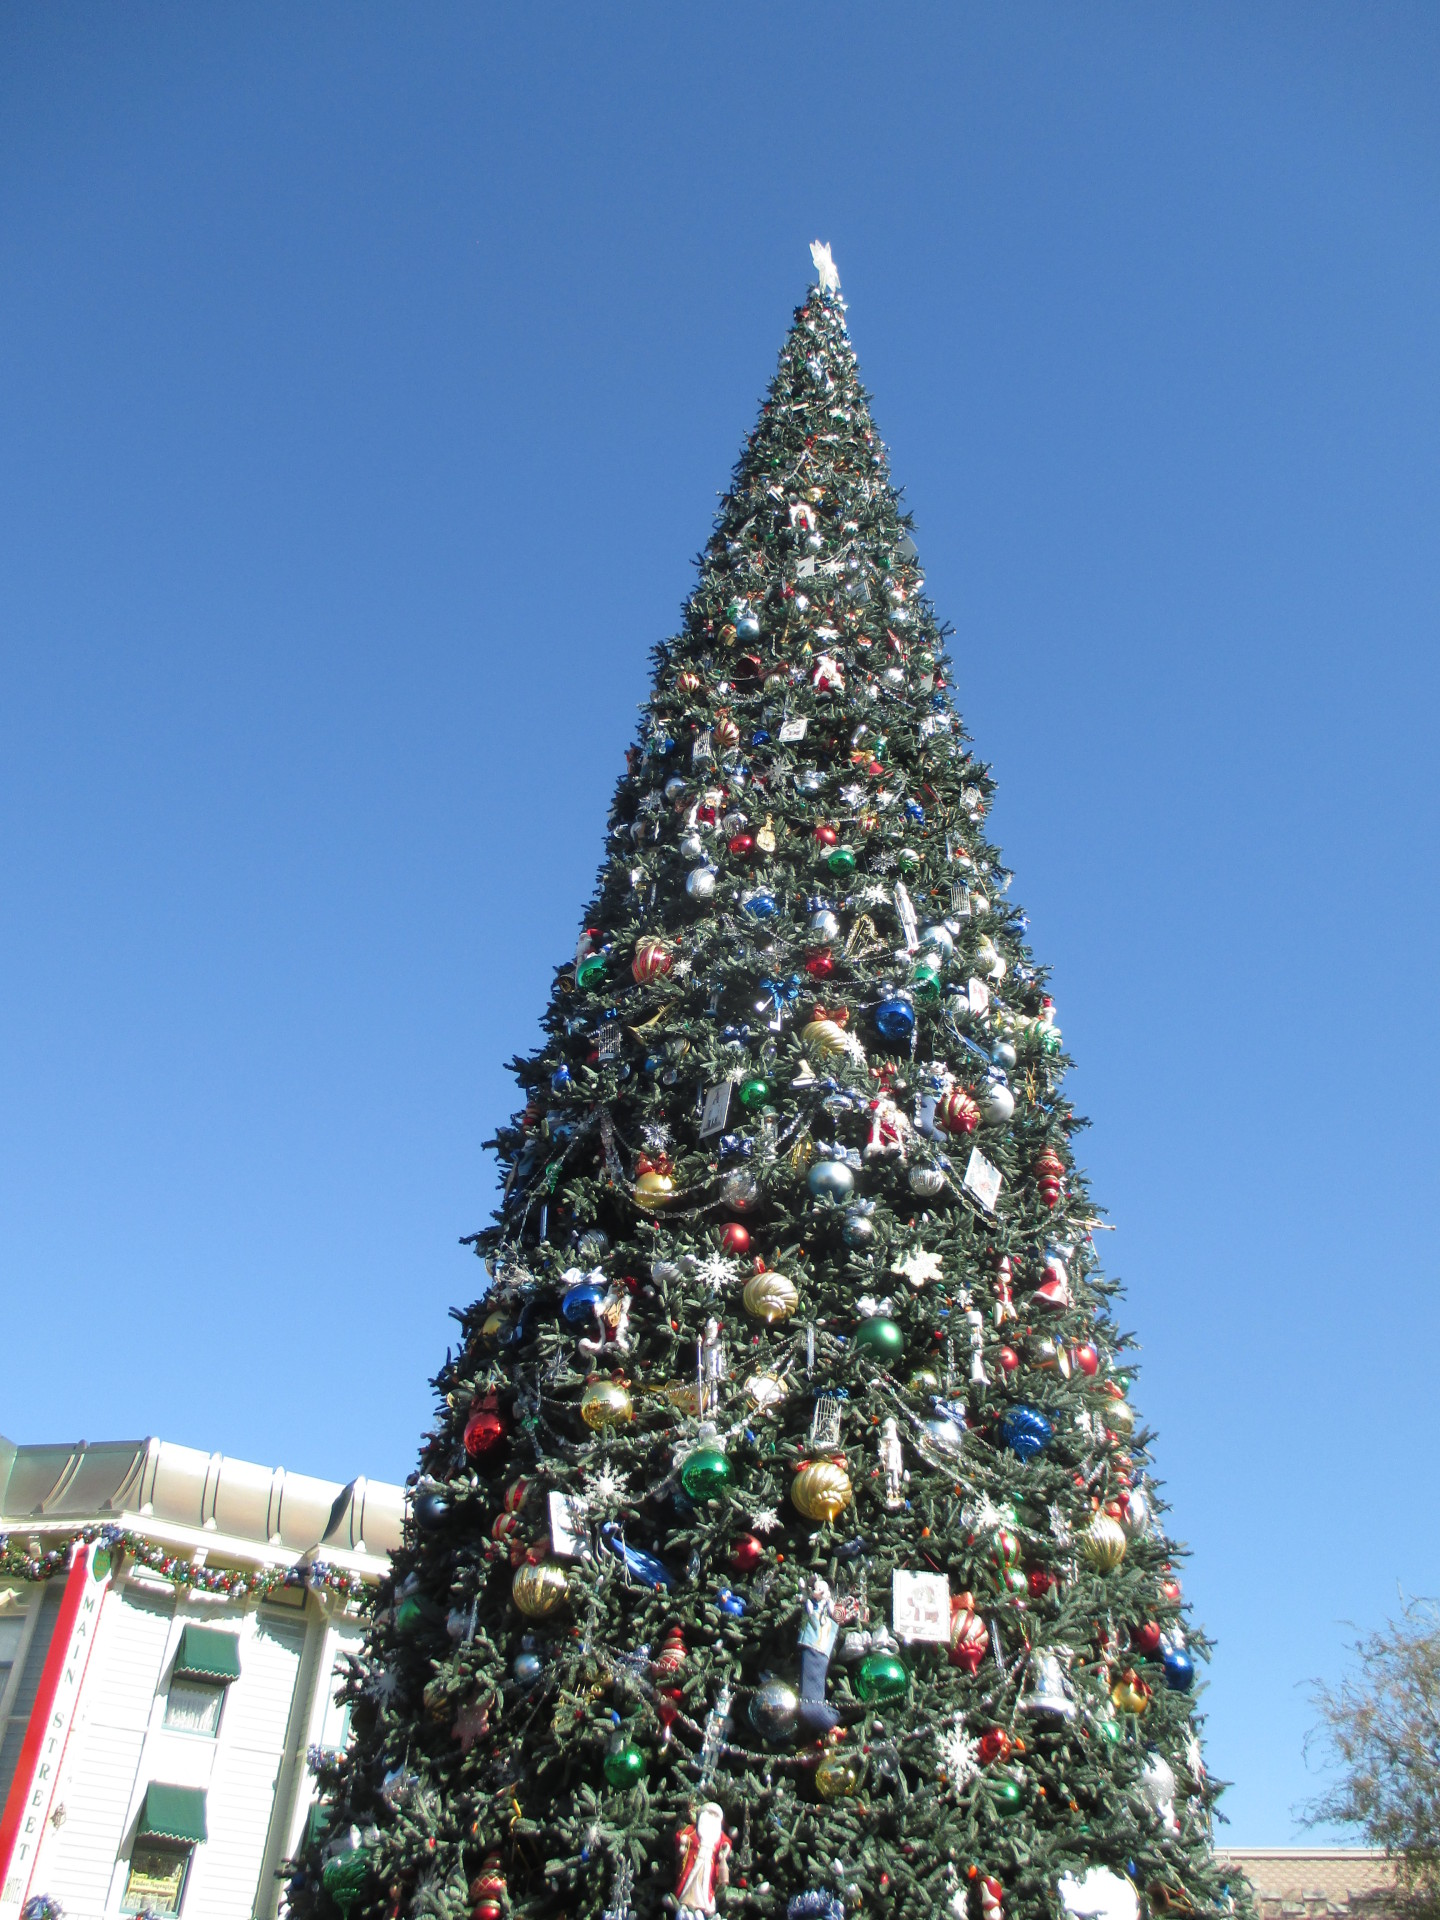 A Christmas Tree in Anaheim on a trip to Disneyland .